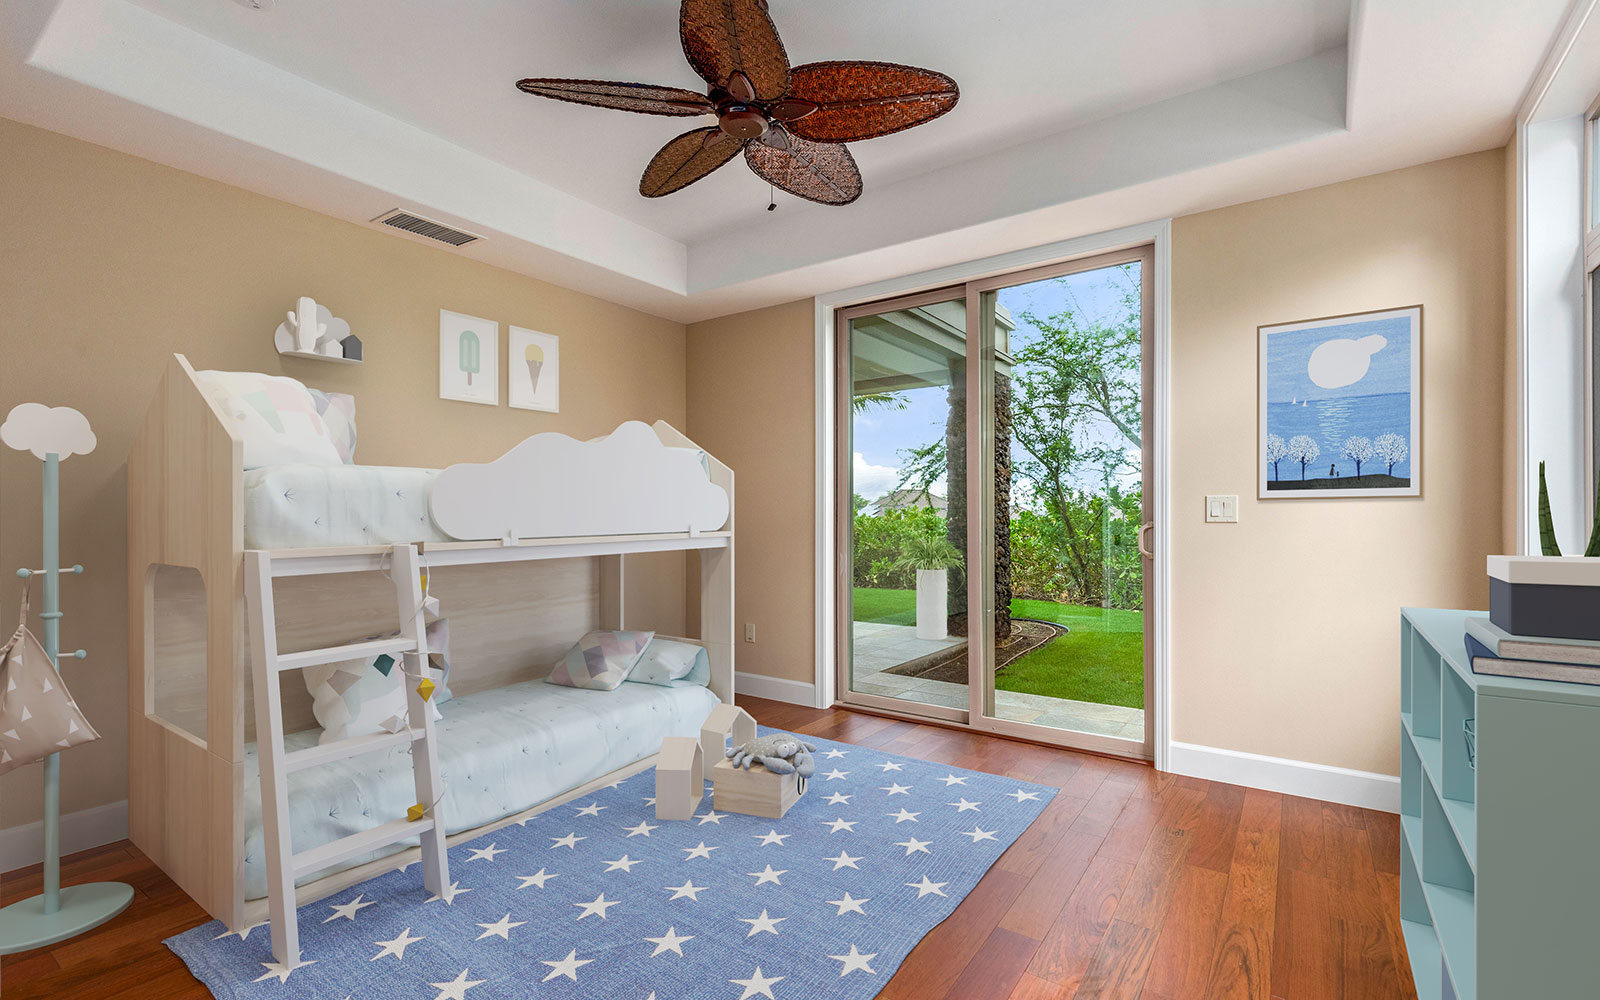 1bedroom-mahina-plan-4-kamilo-at-mauna-lani-big-island-brookfield-residential